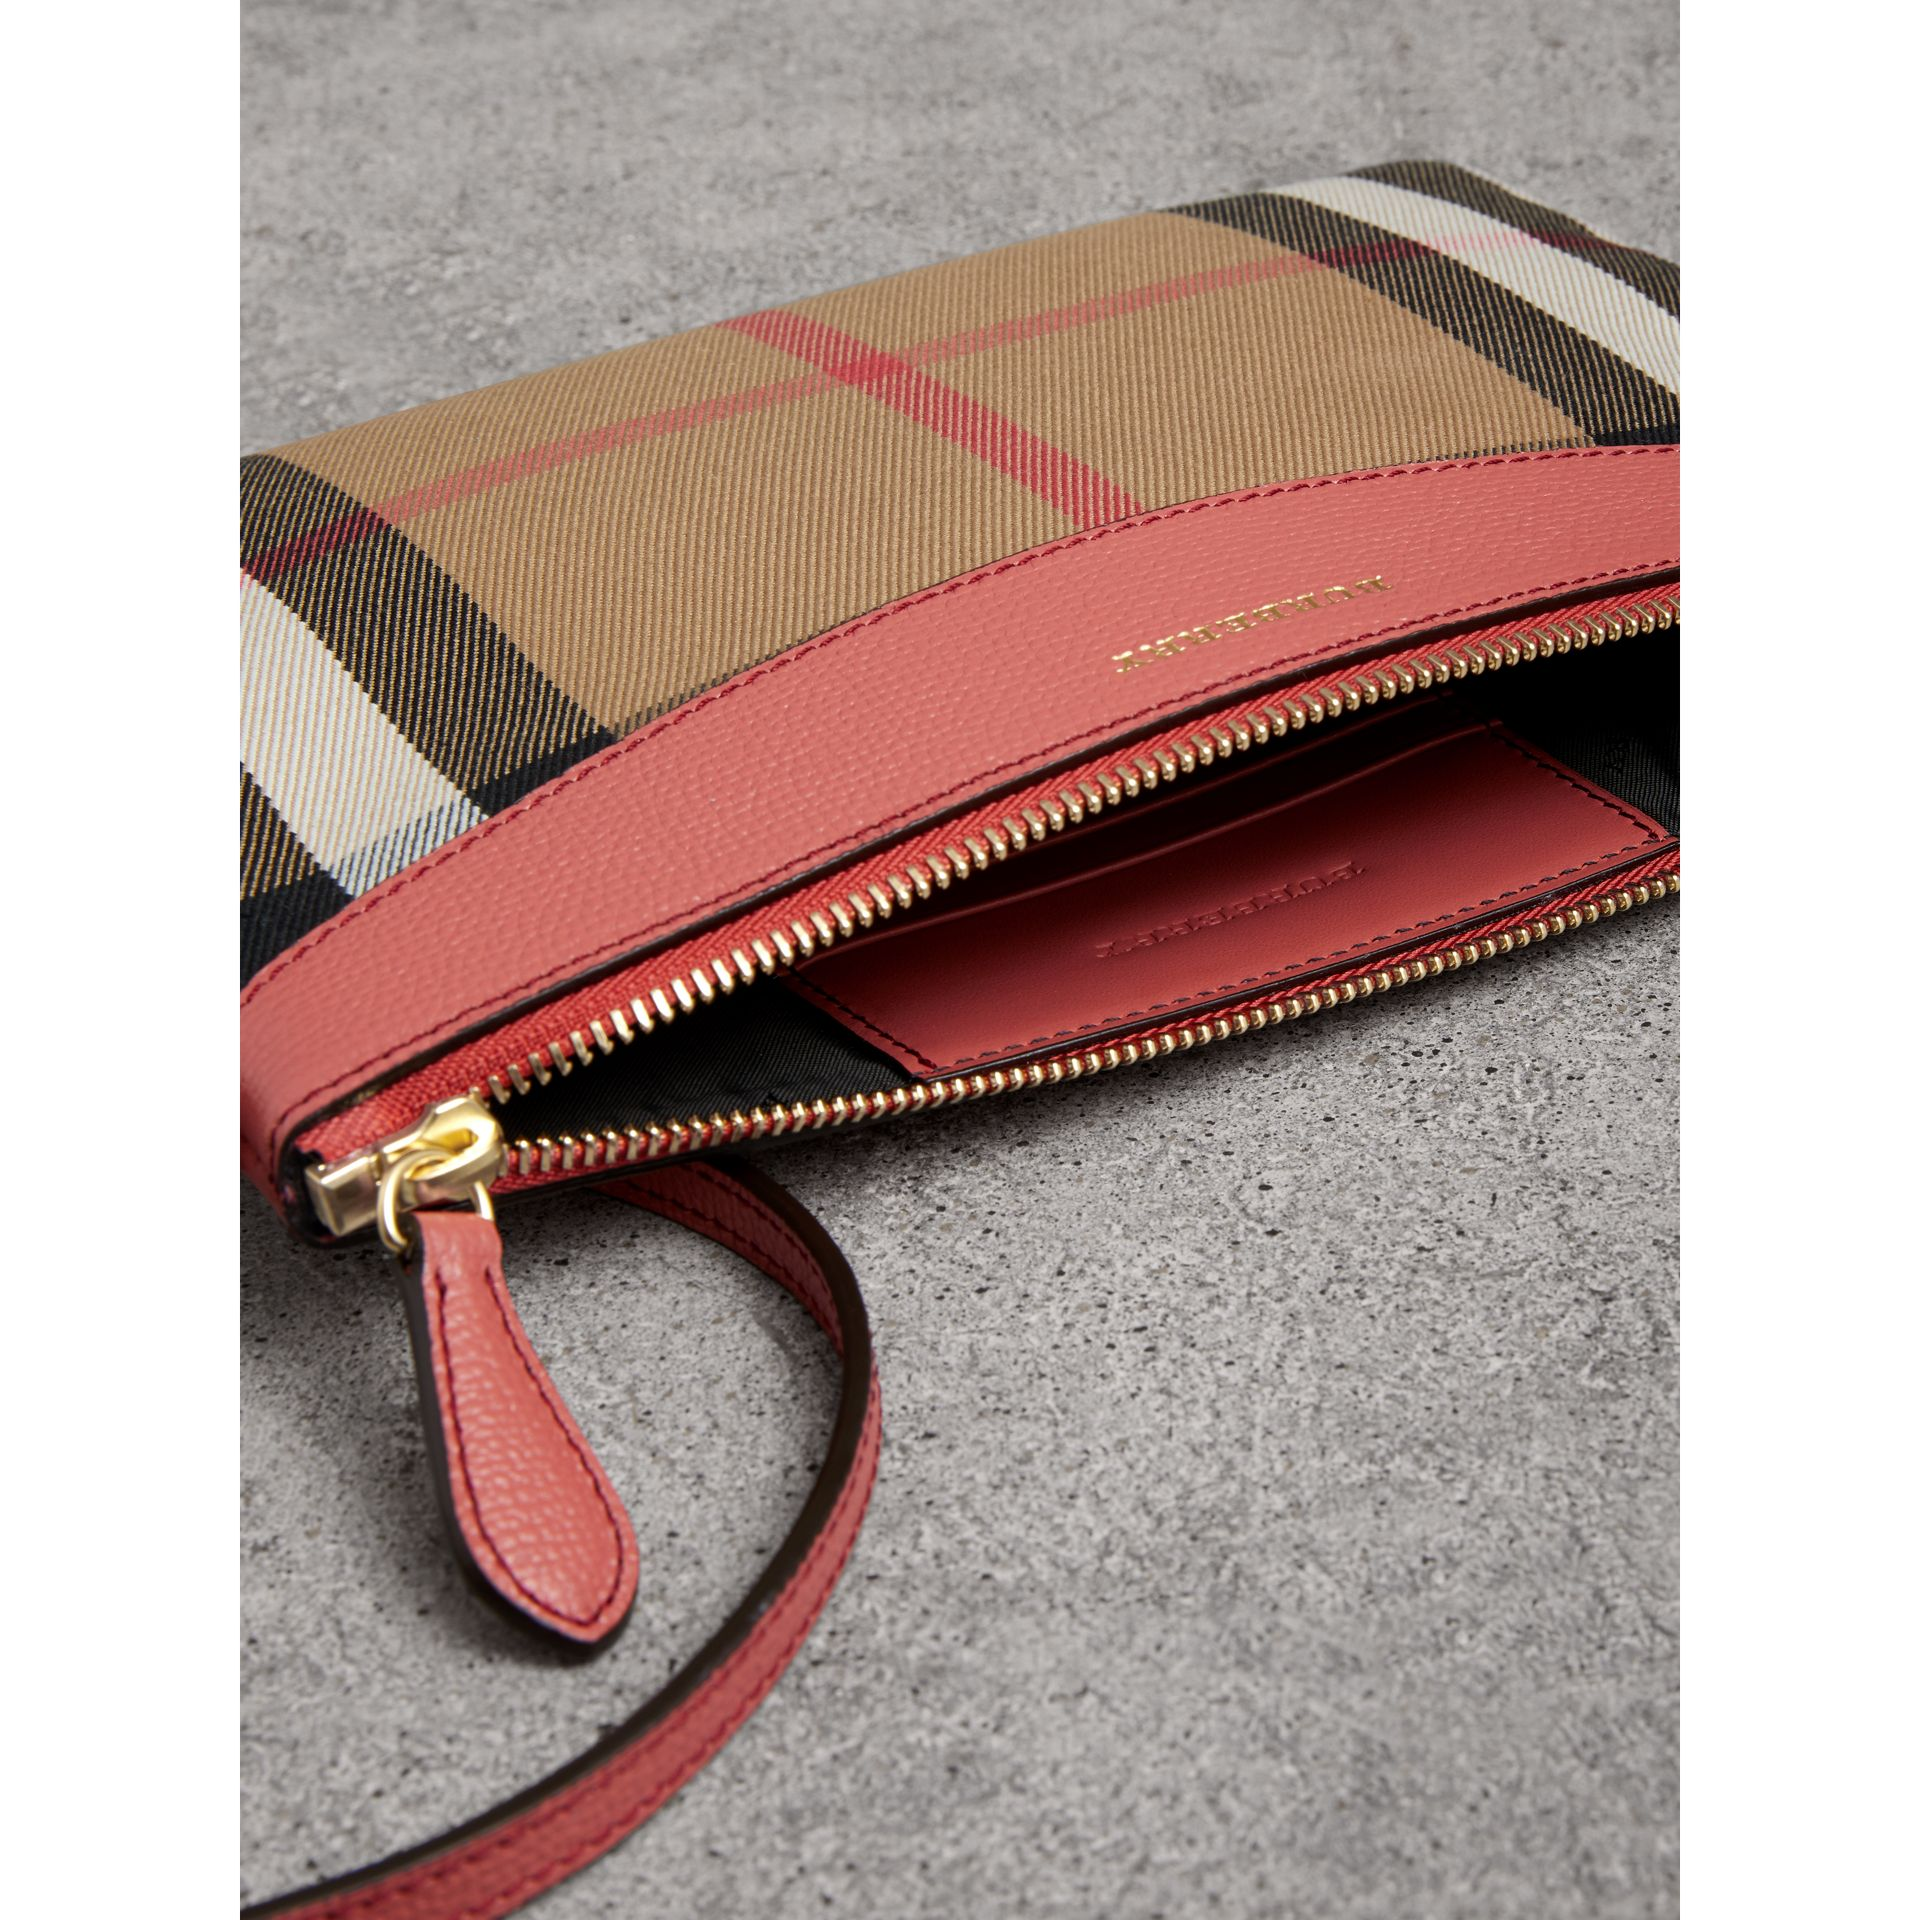 House Check and Leather Clutch Bag in Cinnamon Red - Women | Burberry United Kingdom - gallery image 5